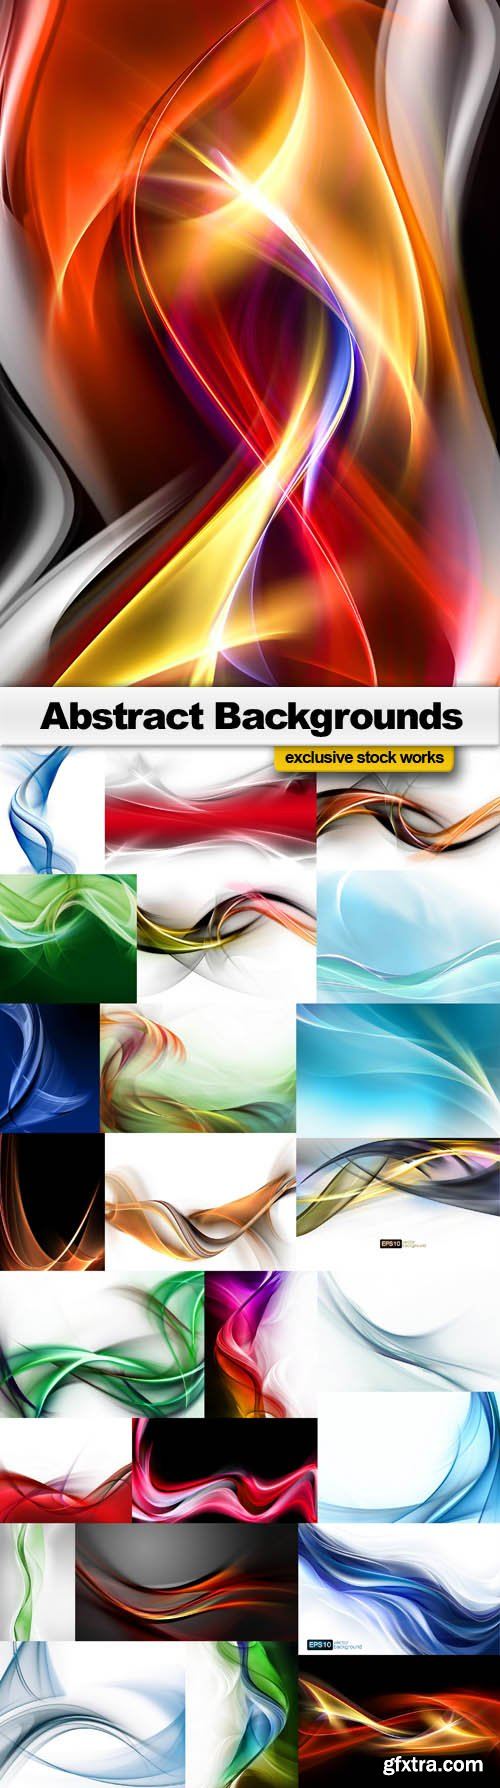 Abstract Backgrounds - 25 JPEG